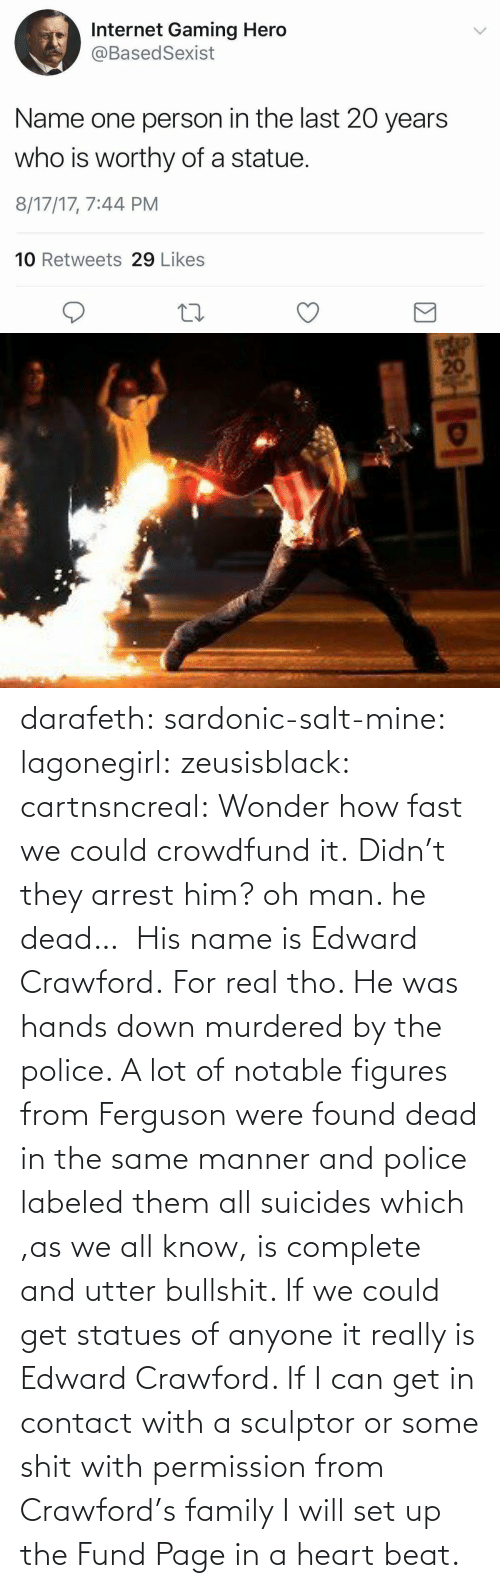 will: darafeth: sardonic-salt-mine:  lagonegirl:  zeusisblack:  cartnsncreal:   Wonder how fast we could crowdfund it.    Didn't they arrest him?  oh man. he dead…   His name is Edward Crawford.   For real tho. He was hands down murdered by the police. A lot of notable figures from Ferguson were found dead in the same manner and police labeled them all suicides which ,as we all know, is complete and utter bullshit.  If we could get statues of anyone it really is Edward Crawford. If I can get in contact with a sculptor or some shit with permission from Crawford's family I will set up the Fund Page in a heart beat.